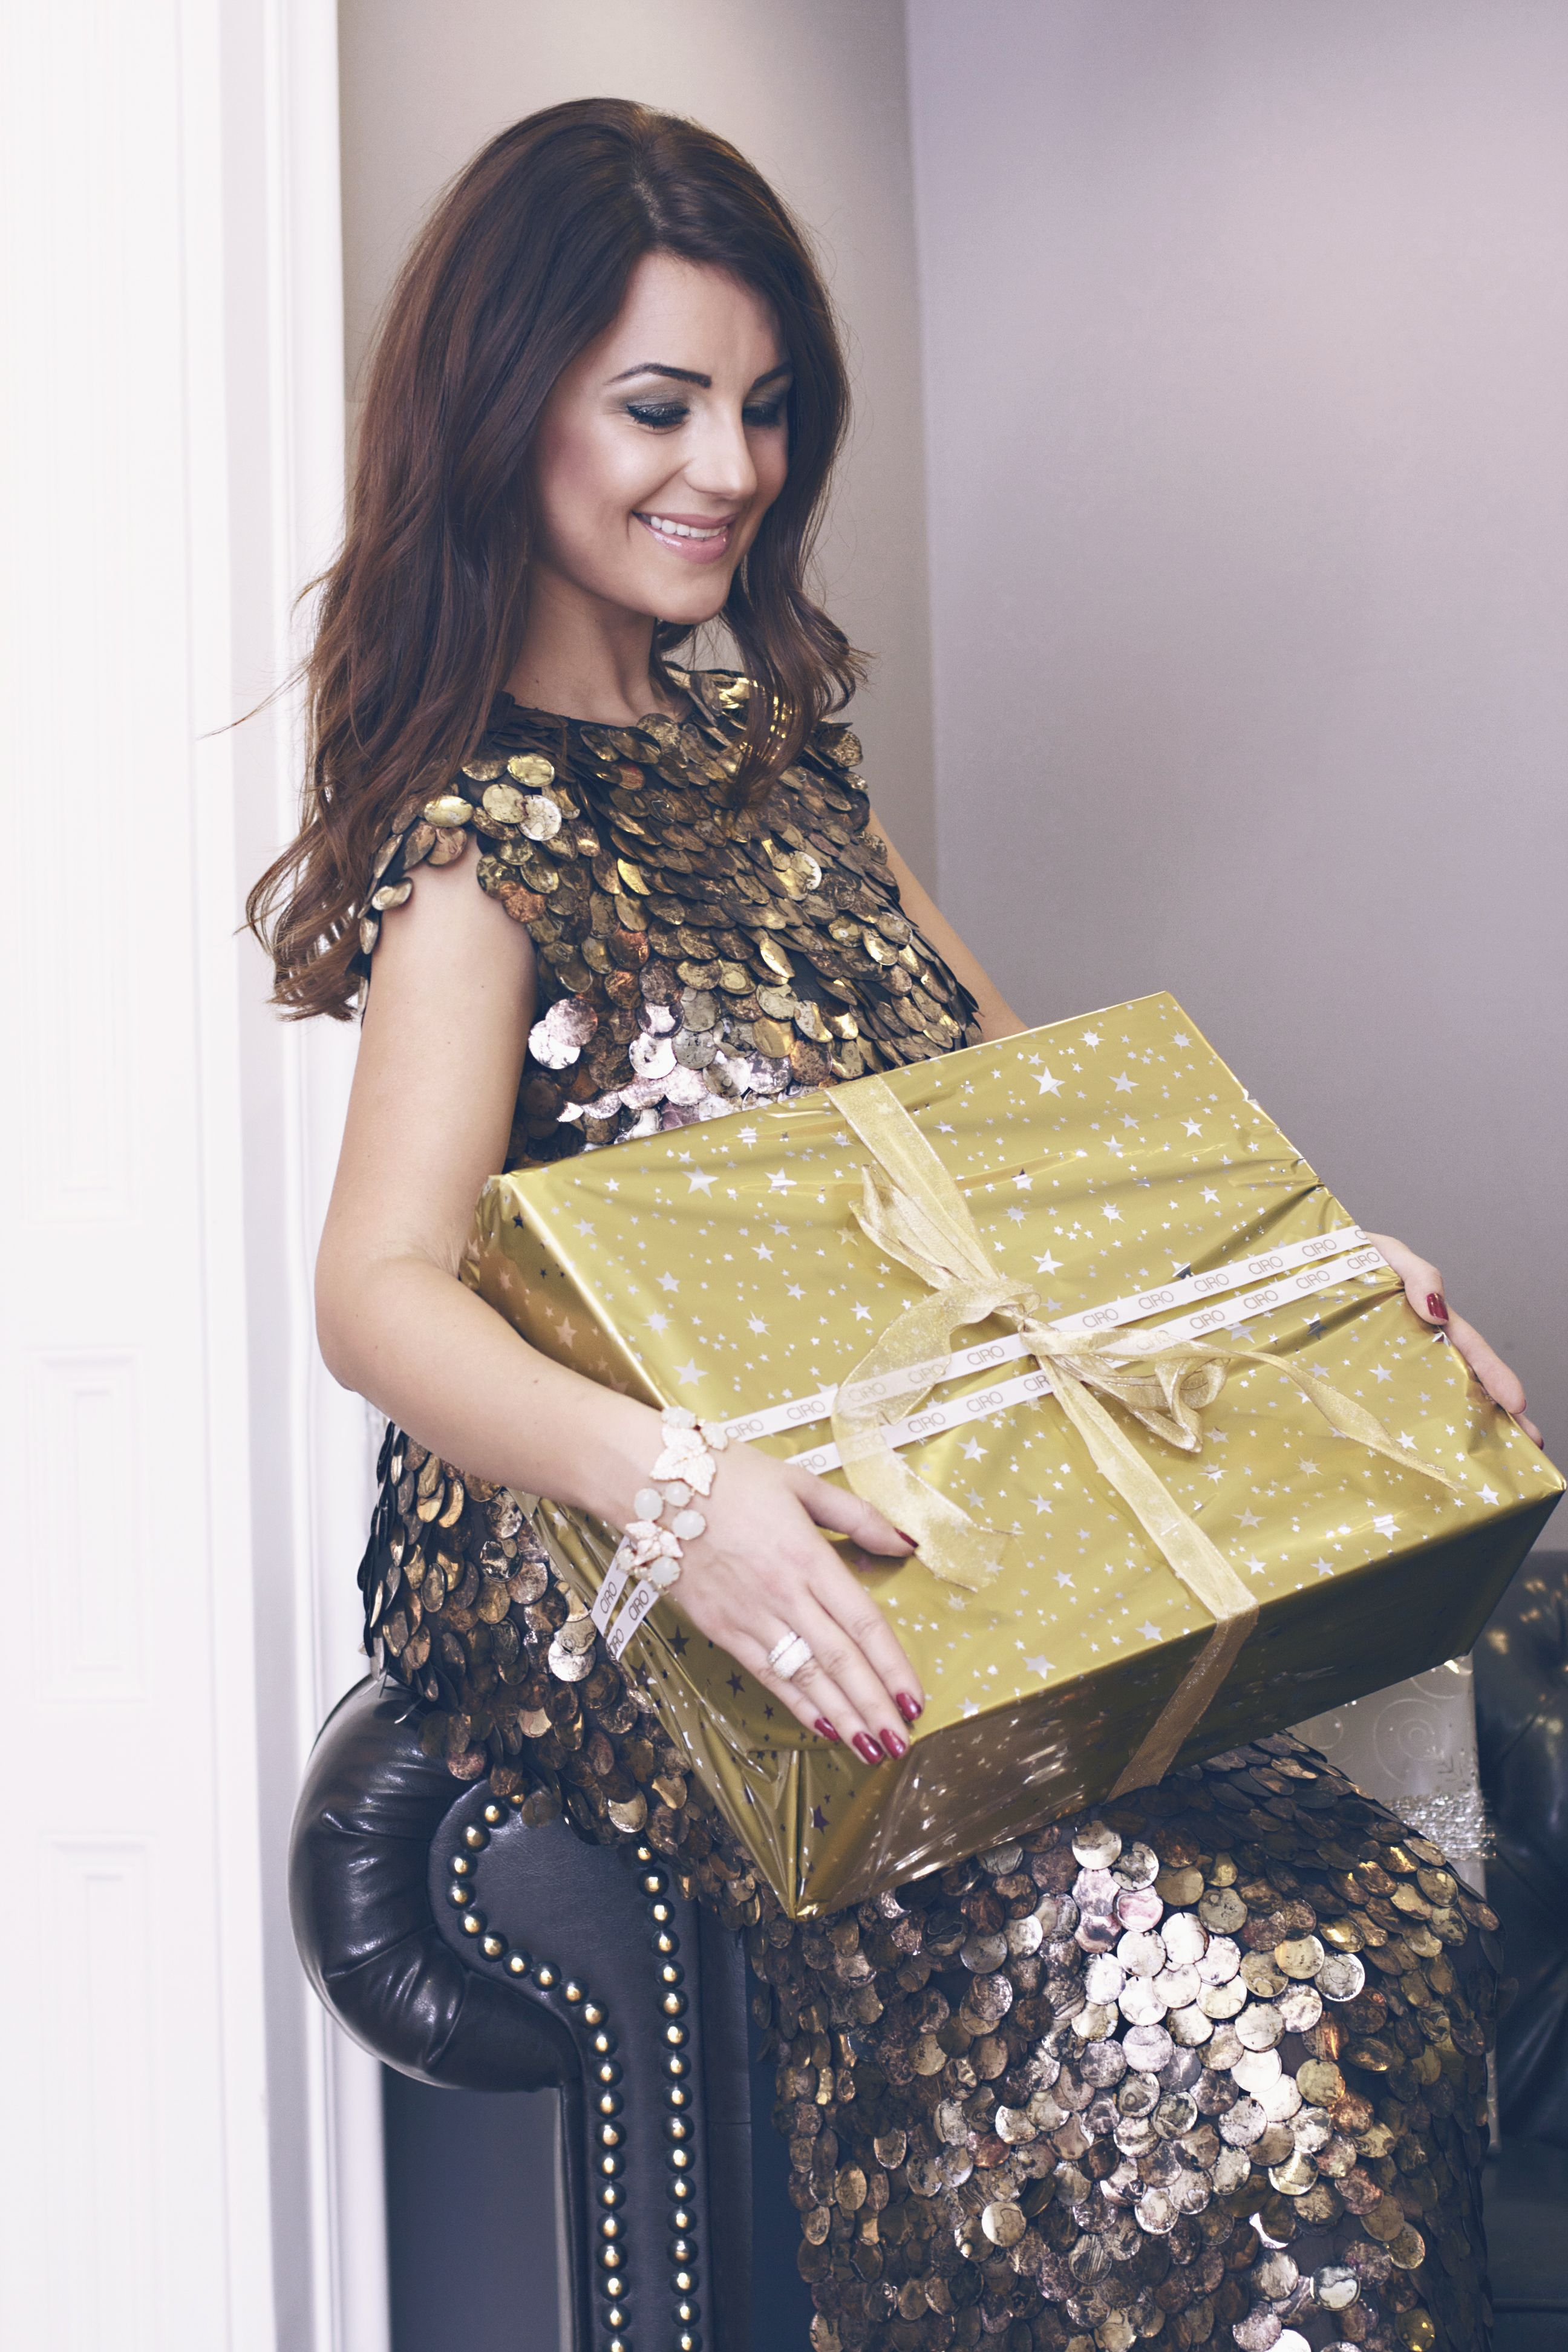 Gold sequin dress for party by Katrin Kafka and CIRO jewelry